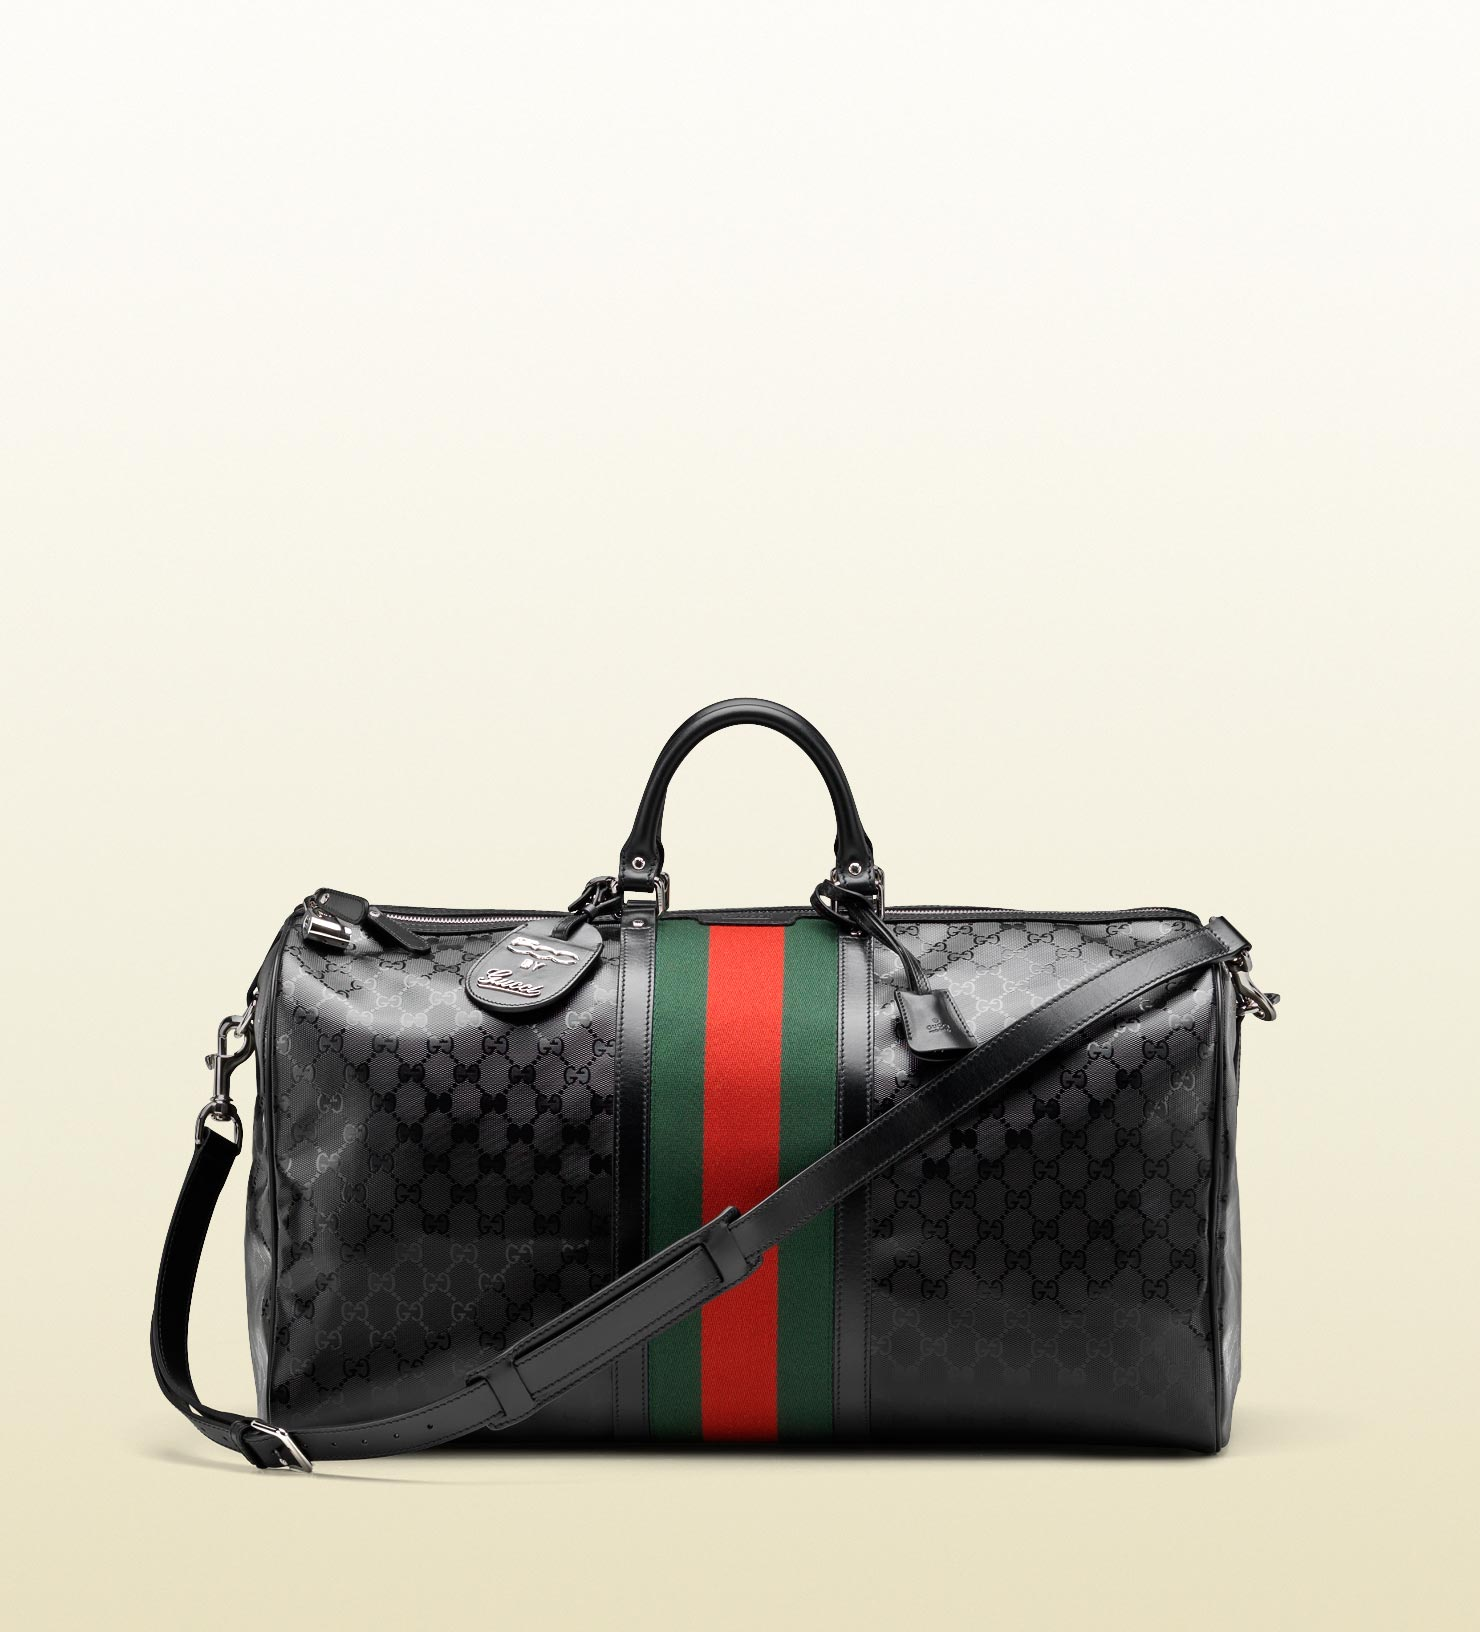 0a0dffa5259 Lyst - Gucci Carry-on Duffle With Signature Web Detail in Black for Men